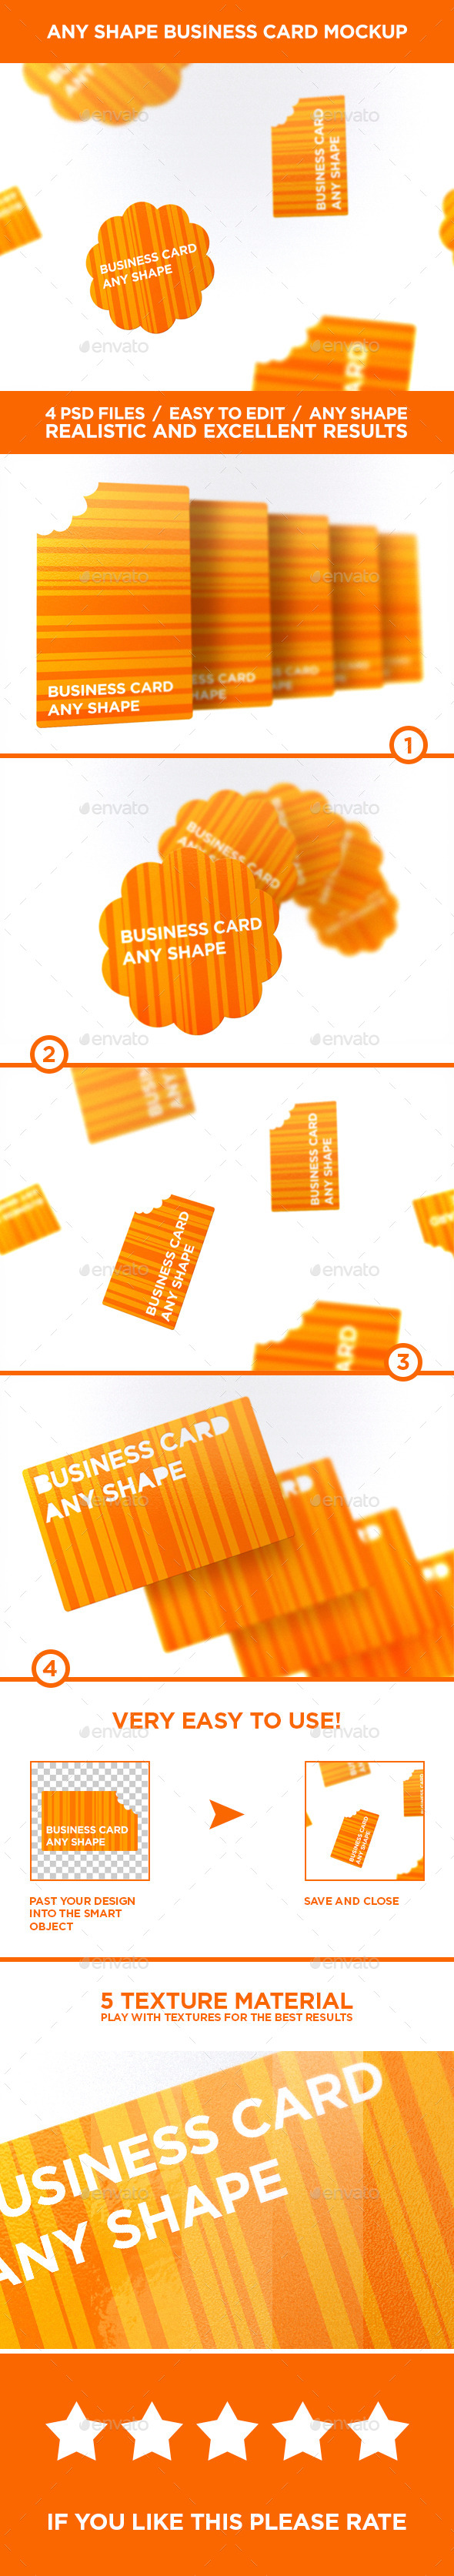 GraphicRiver Business Card Any Shape MockUps Vol.1 10429821